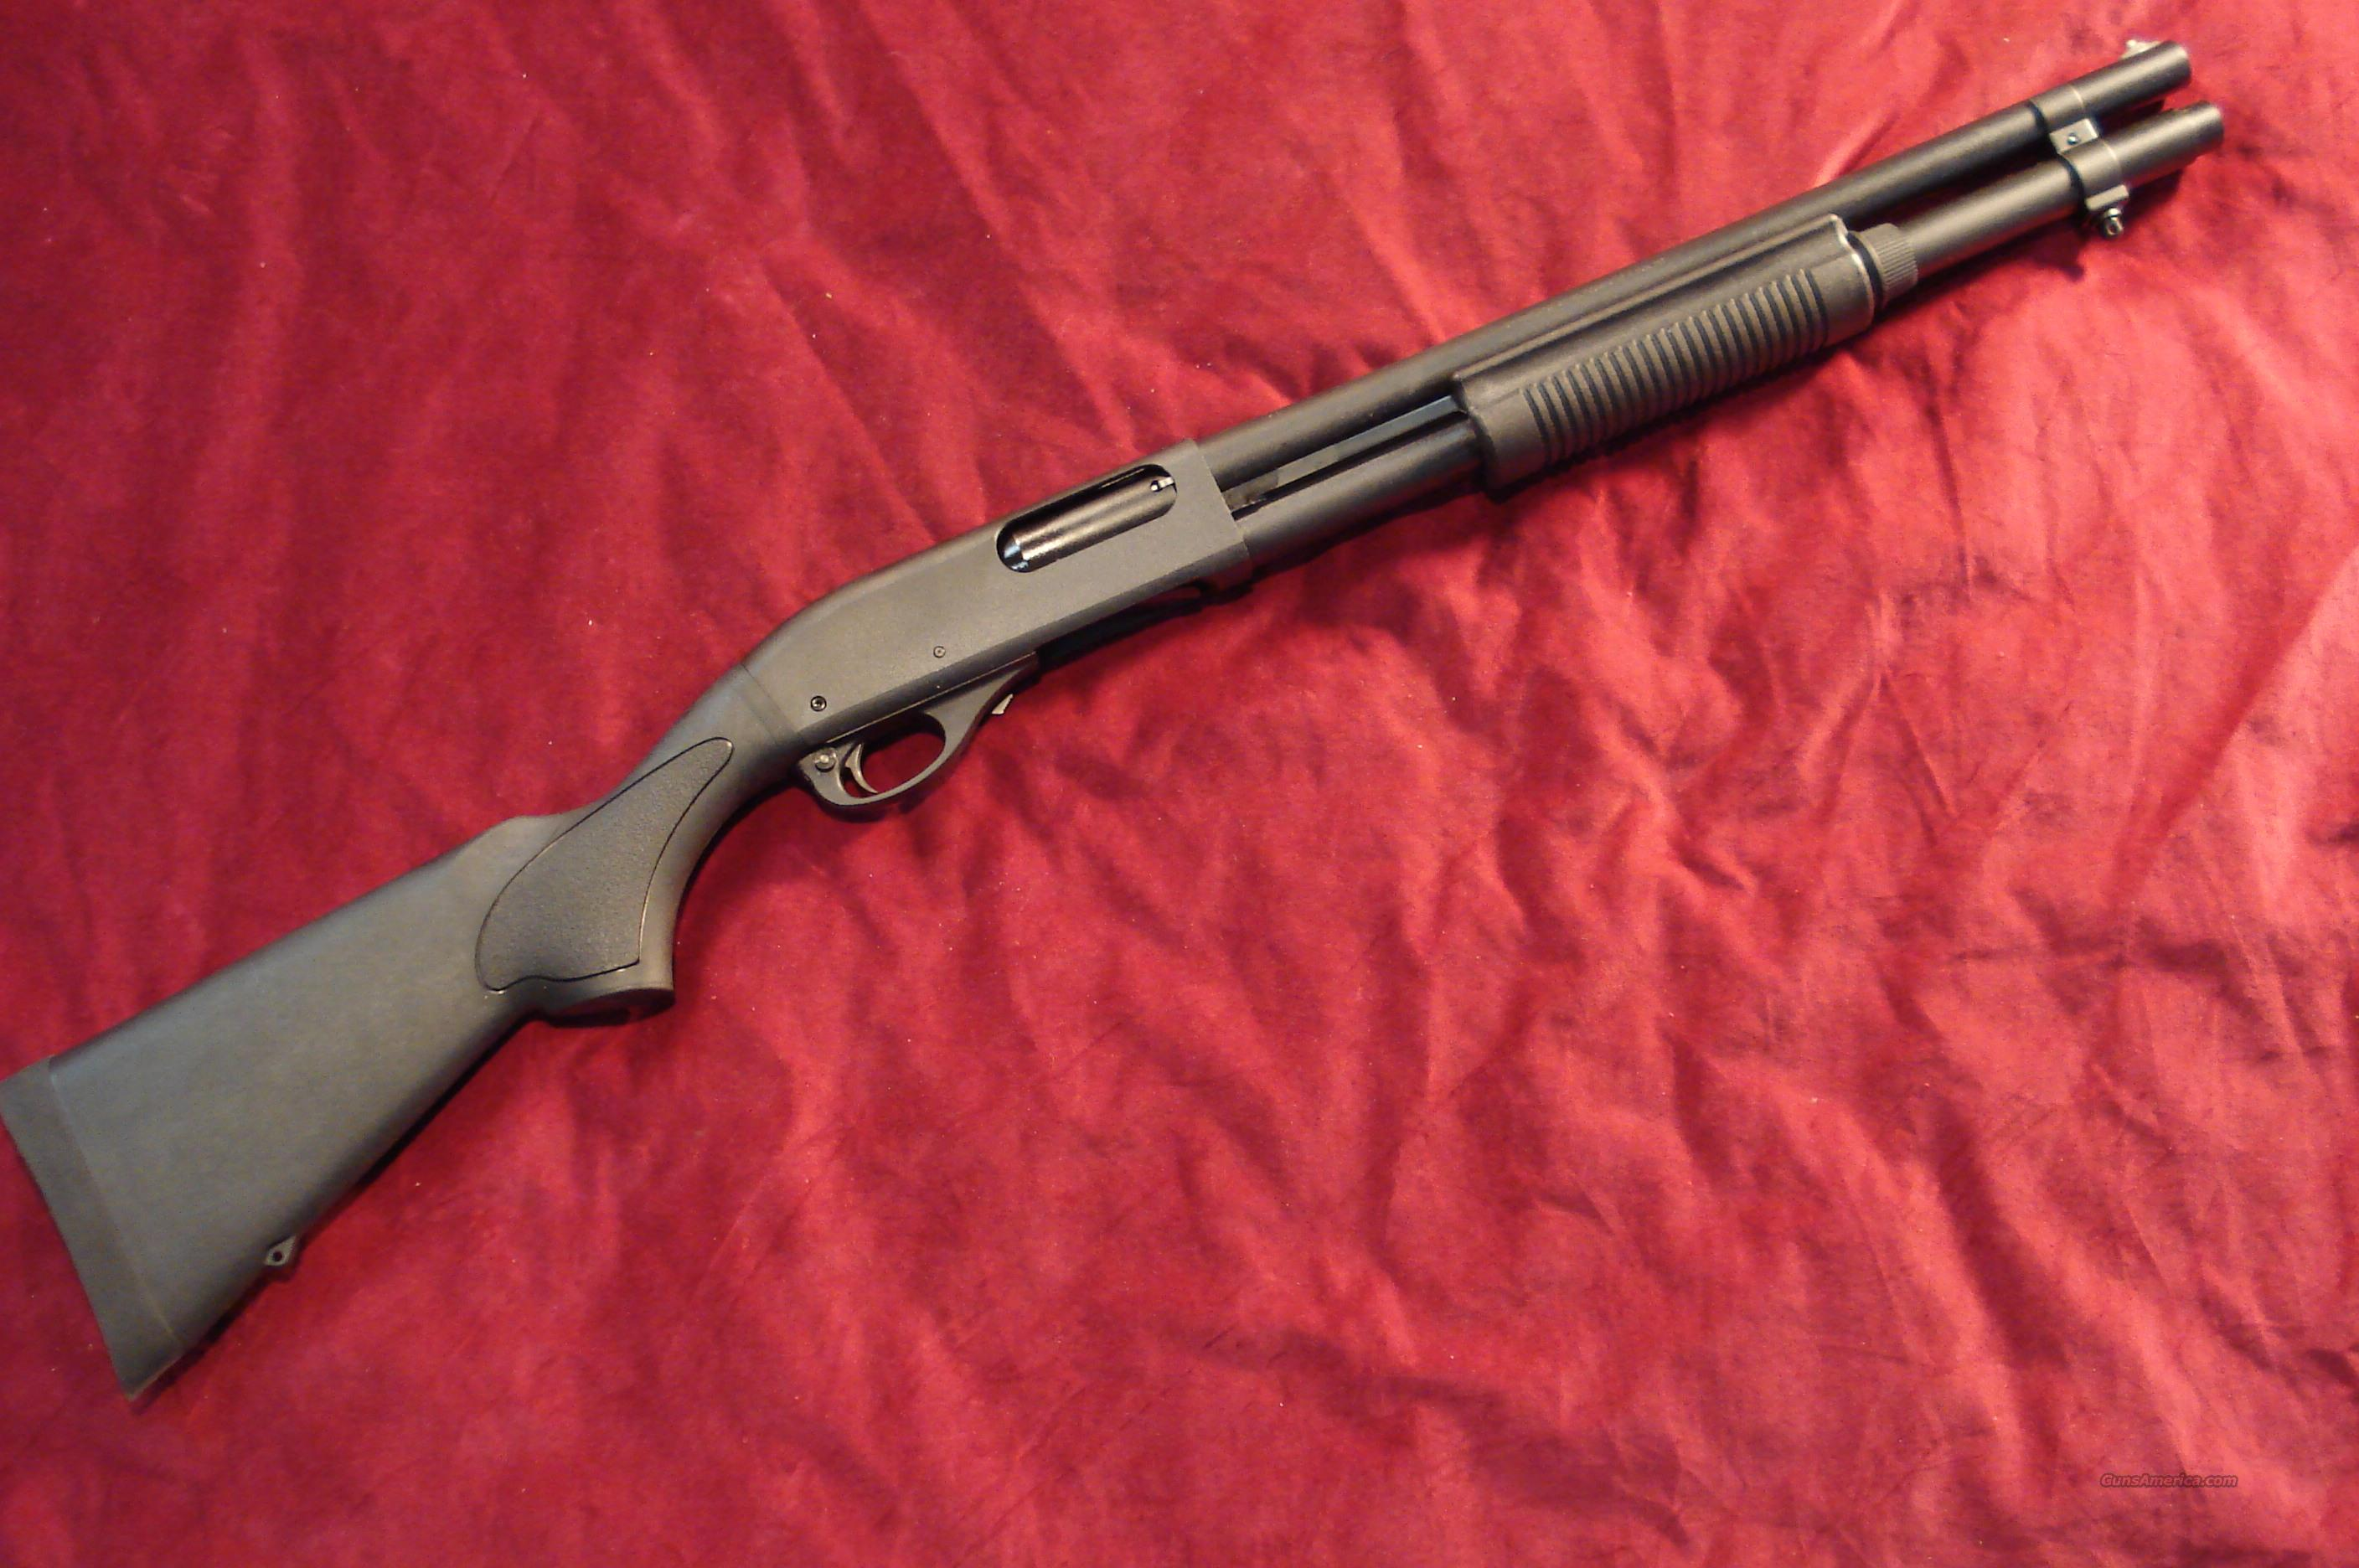 "NEW STYLE REMINGTON 870 HD (HOME DEFENSE)12G PUMP ACTION SHOTGUN WITH A 18"" BARREL, 3"" CHAMBER, CYLINDER BORE, FACTORY MAG EXTENSION 7-SHOT MAGAZINE.IT HAS BEAD FRONT SIGHT, SYNTHETIC STOCK AND FOREARM, MATTE BLACK FINISH ON ALL METAL.   Guns > Shotguns > Remington Shotguns  > Pump > Tactical"